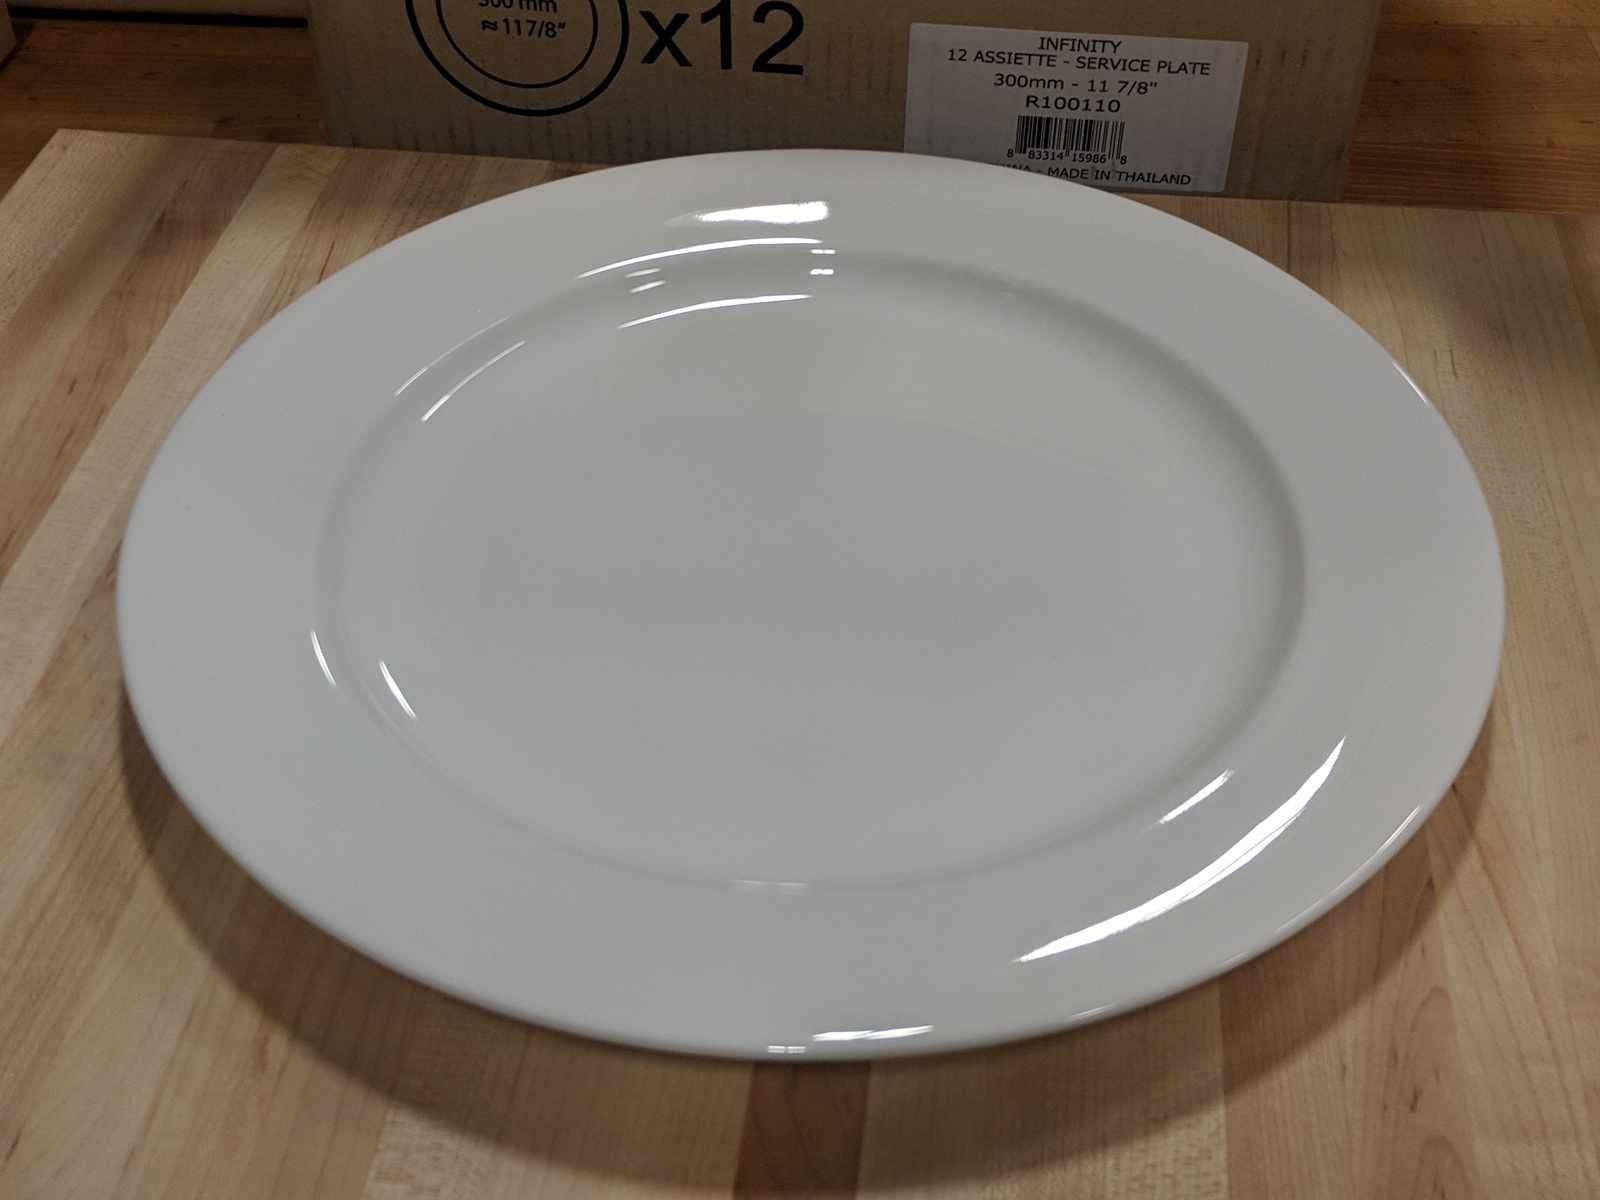 """Lot 35 - 11-7/8"""" Infinity Service Plates - Lot of 12 (1 Case), Arcoroc R1001"""